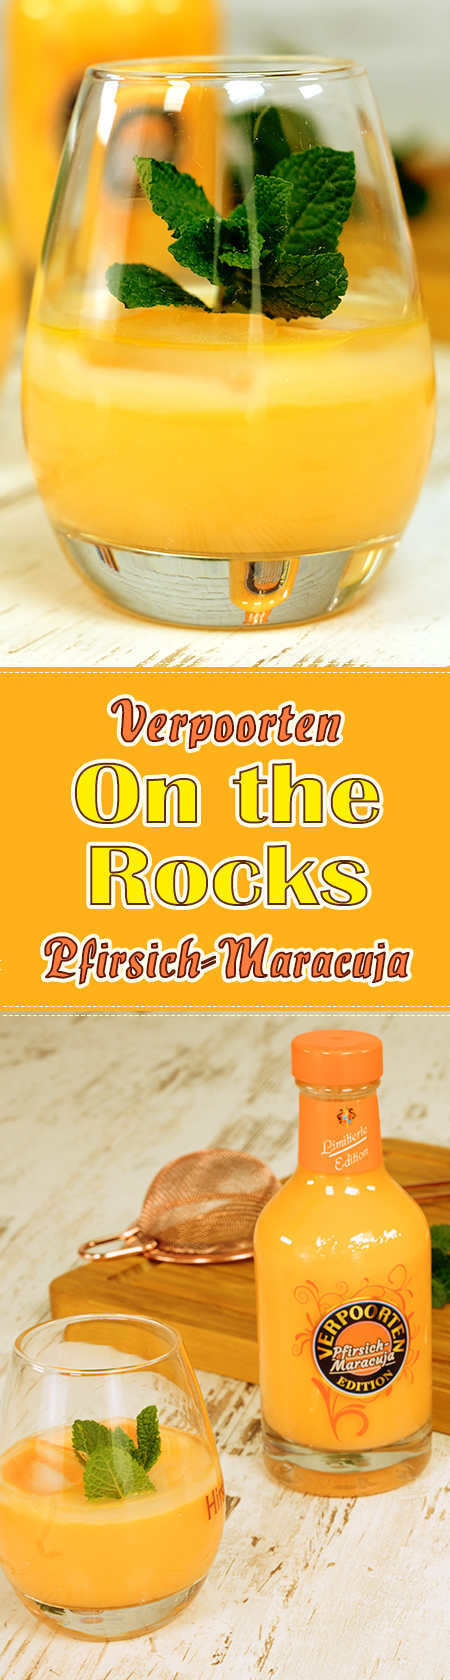 VERPOORTEN Pfirsich-Maracuja - on the rocks